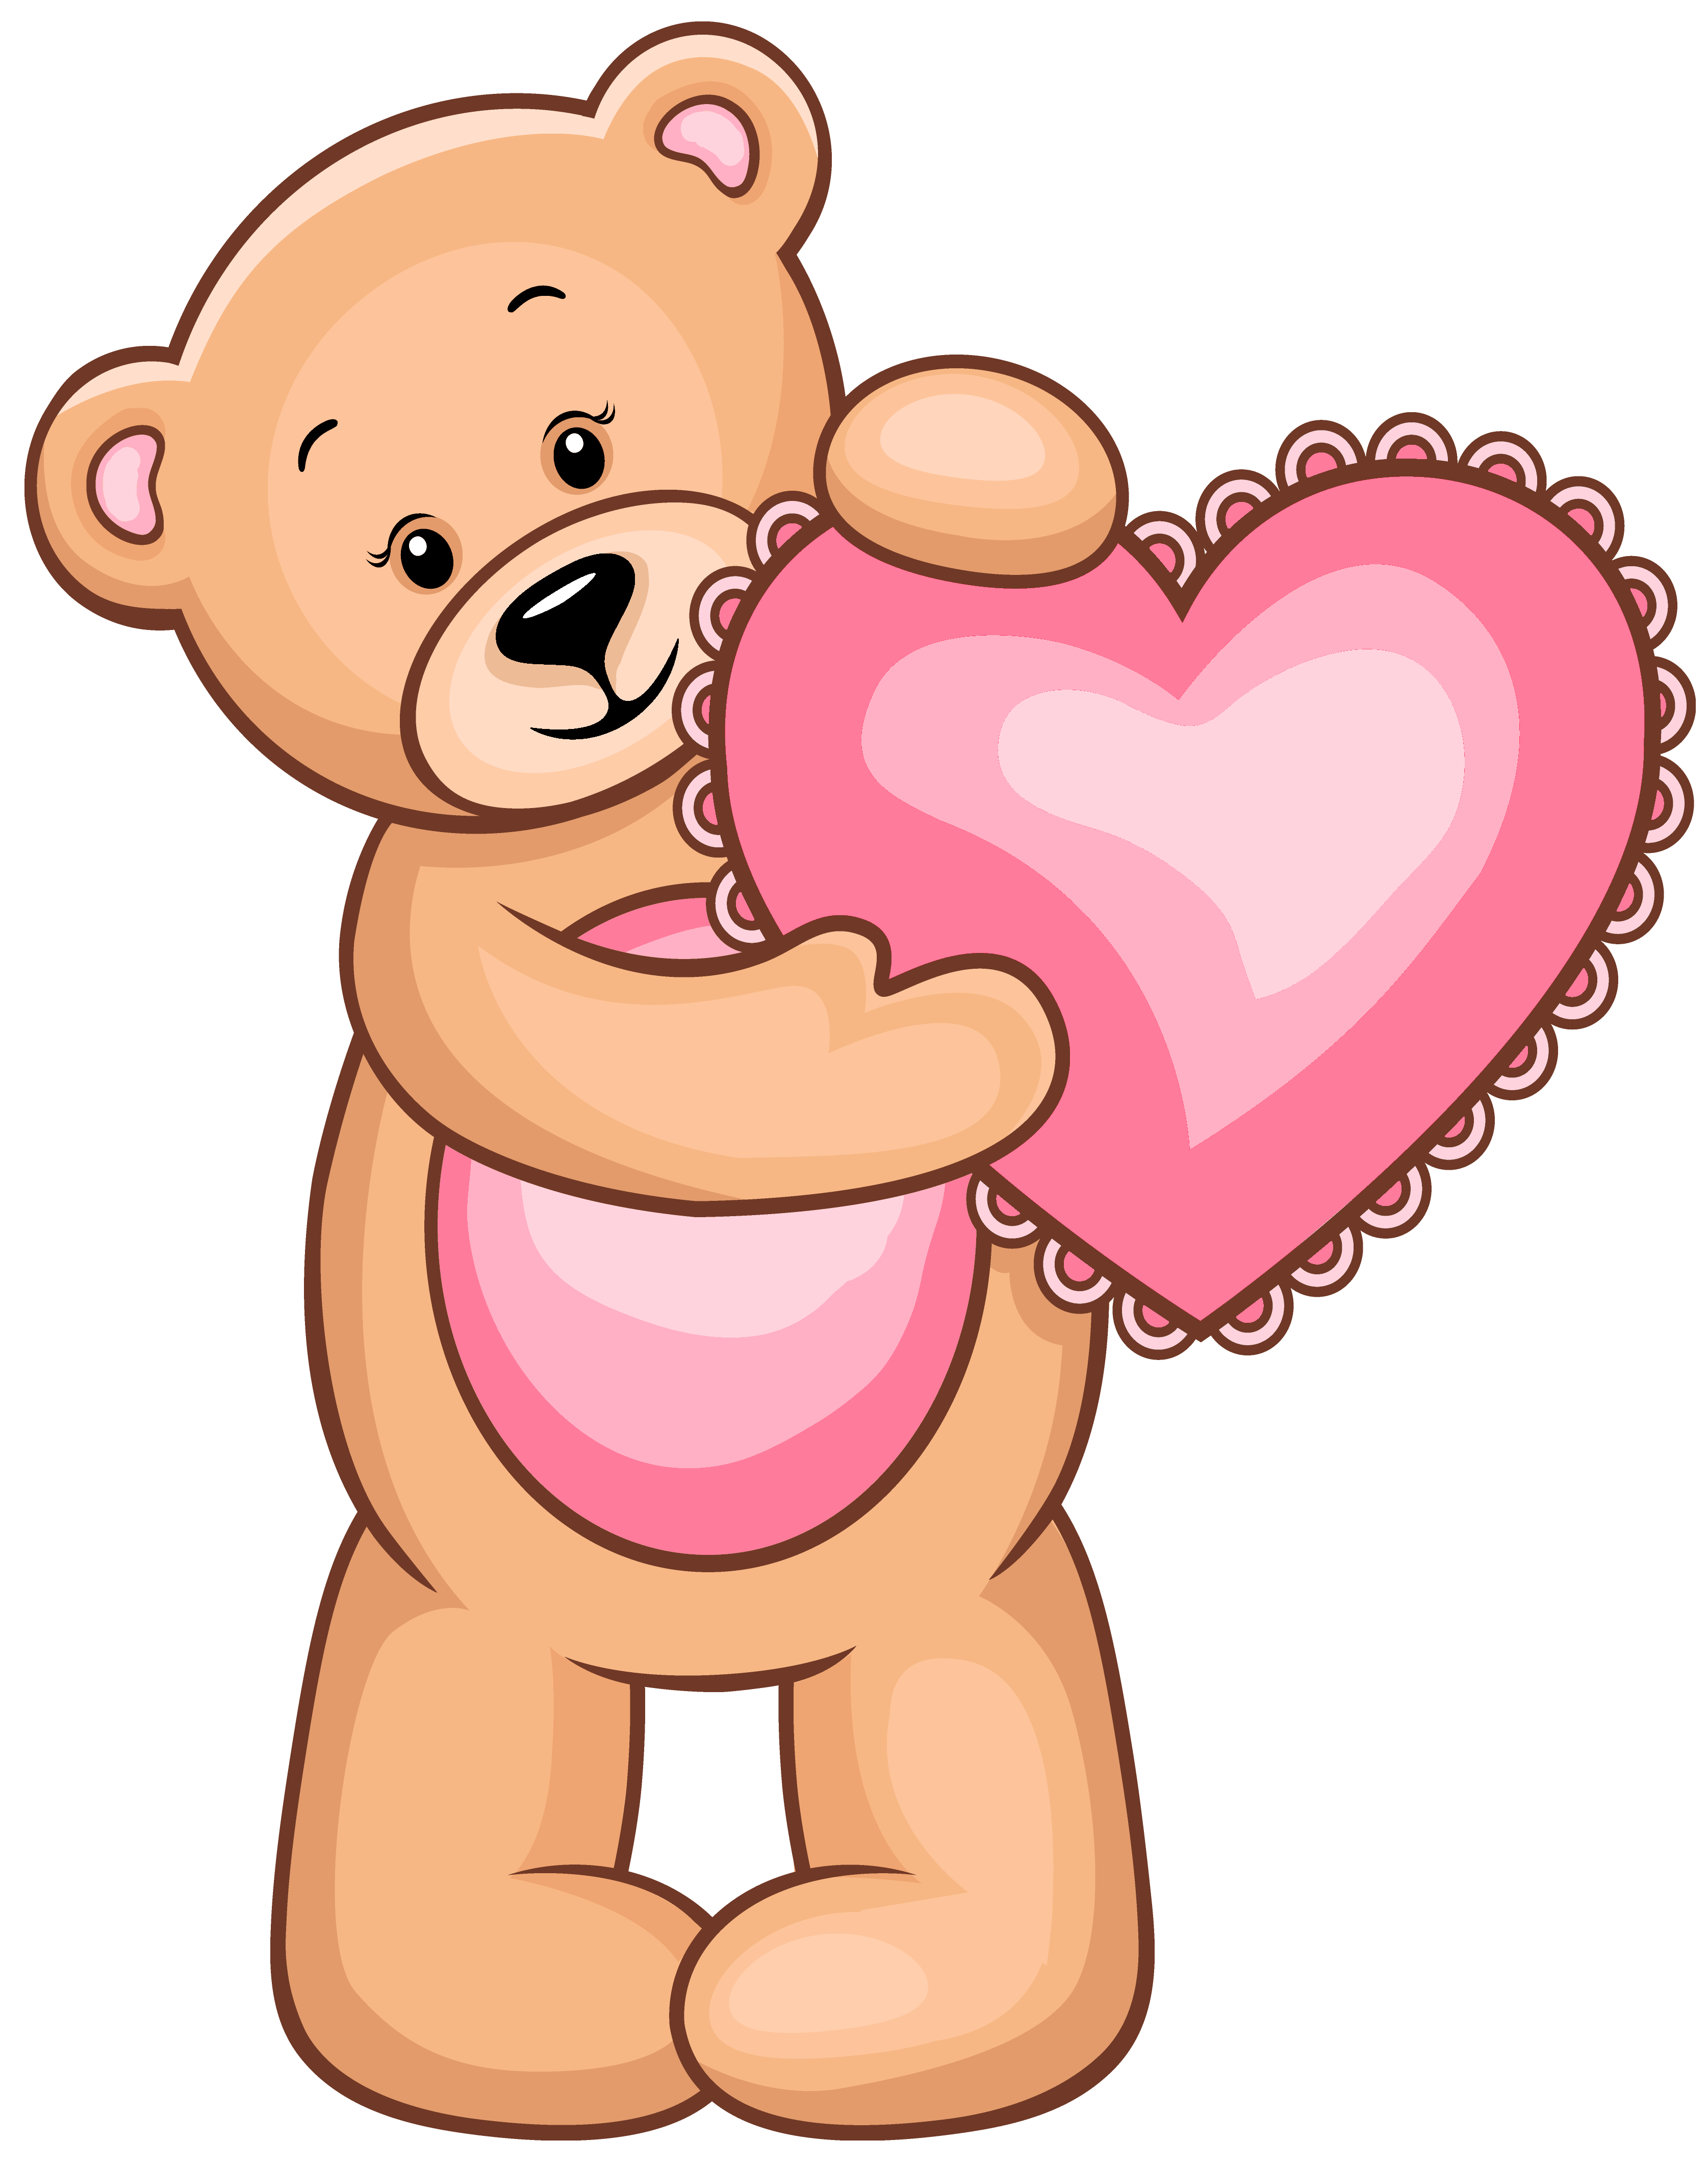 Holding heart clipart banner transparent Transparent Teddy Bear with Pink Heart PNG Clipart | Gallery ... banner transparent